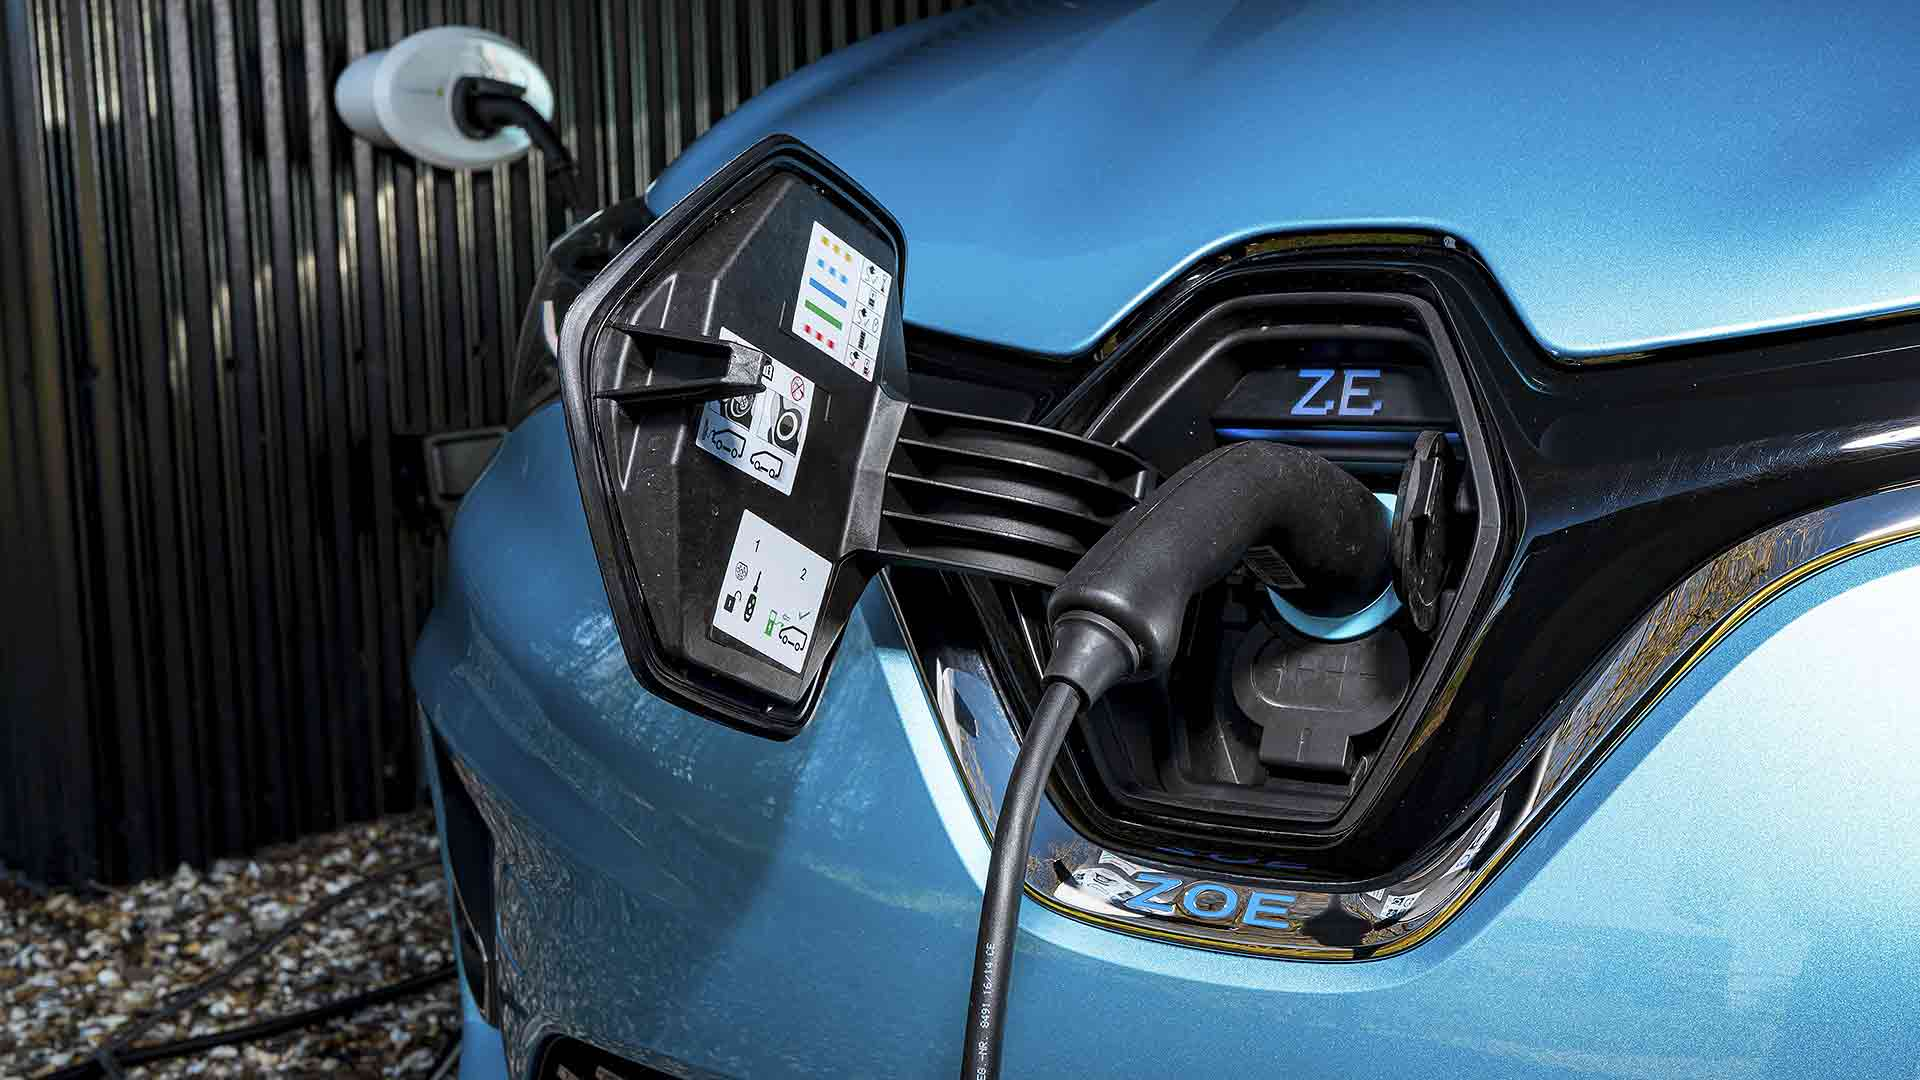 Renault Zoe plug-in electric car